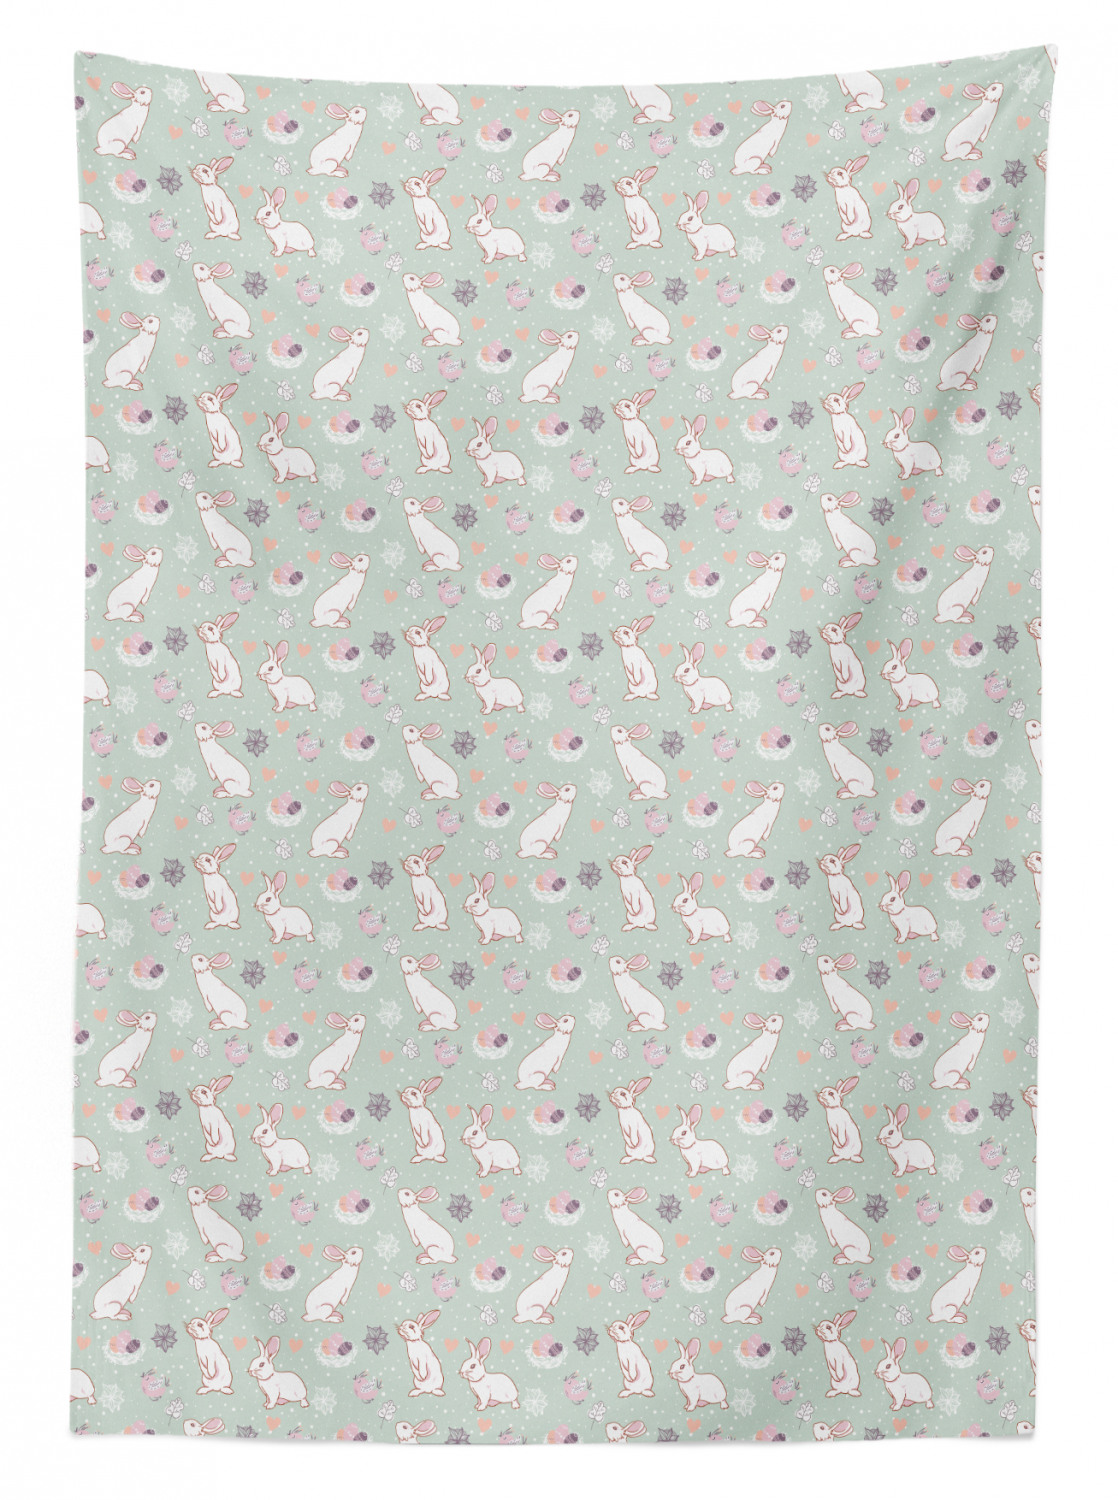 Easter Tablecloth Ambesonne 3 Sizes Available Rectangular Table Cover Home Decor